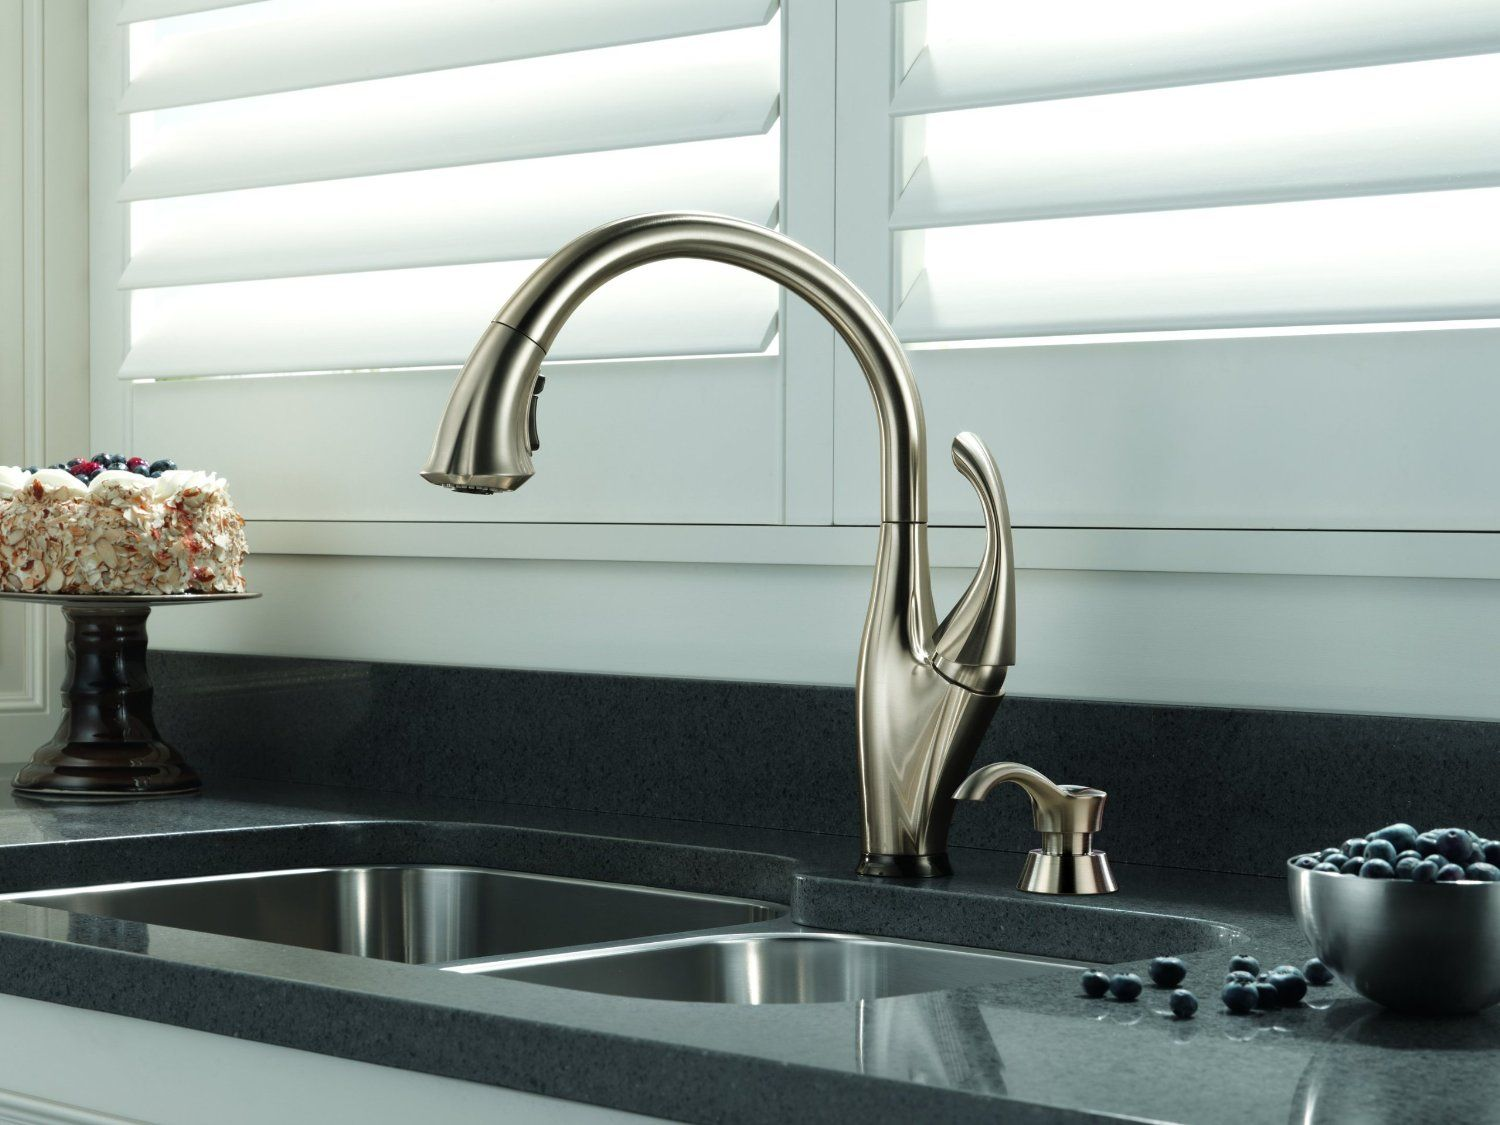 The faucet is finished in stainless steel with a contemporary style ...